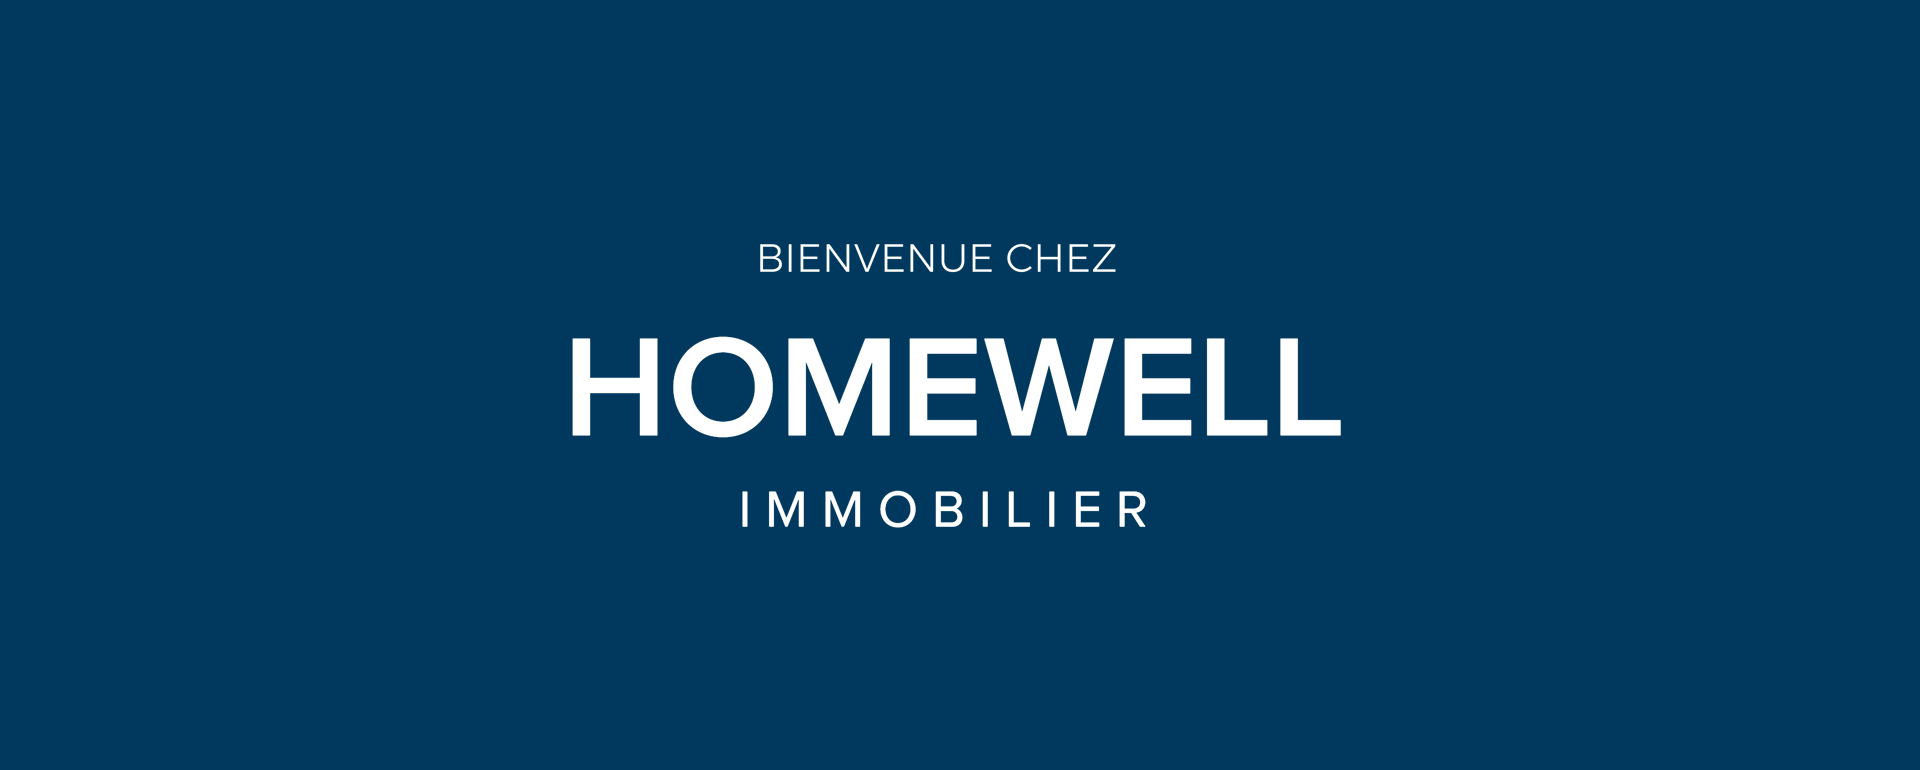 Homewell Immobilier